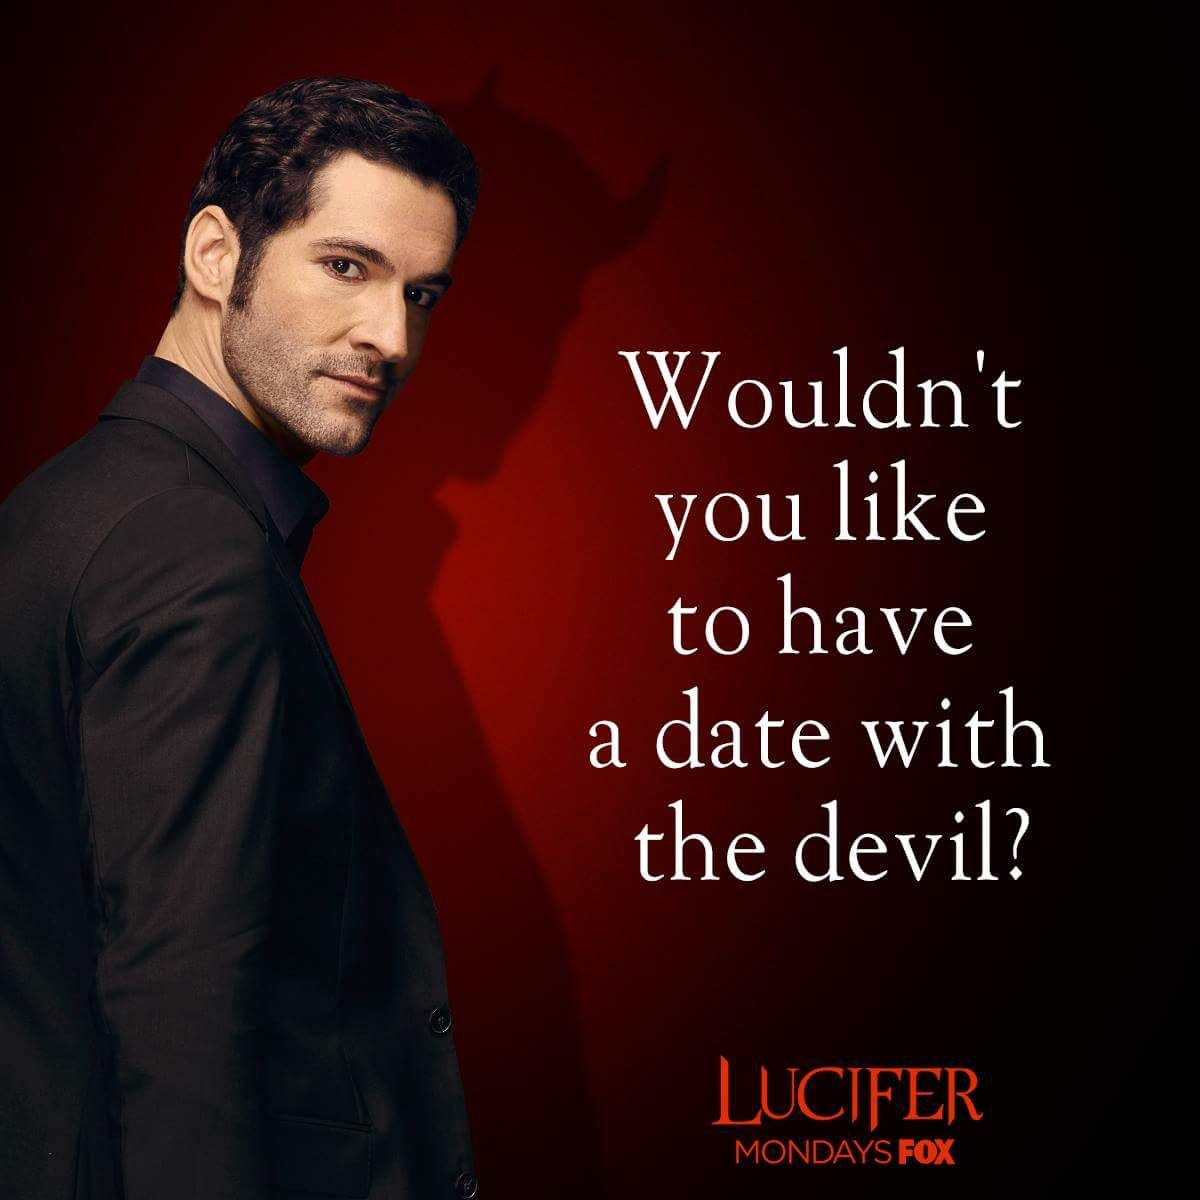 Lucifer S Favorite Valentine S Day Say Believe Mine Forever Tom Ellis As Lucifer Morningstar Lucifer Lucifer Morningstar Lucifer Quote Lucifer